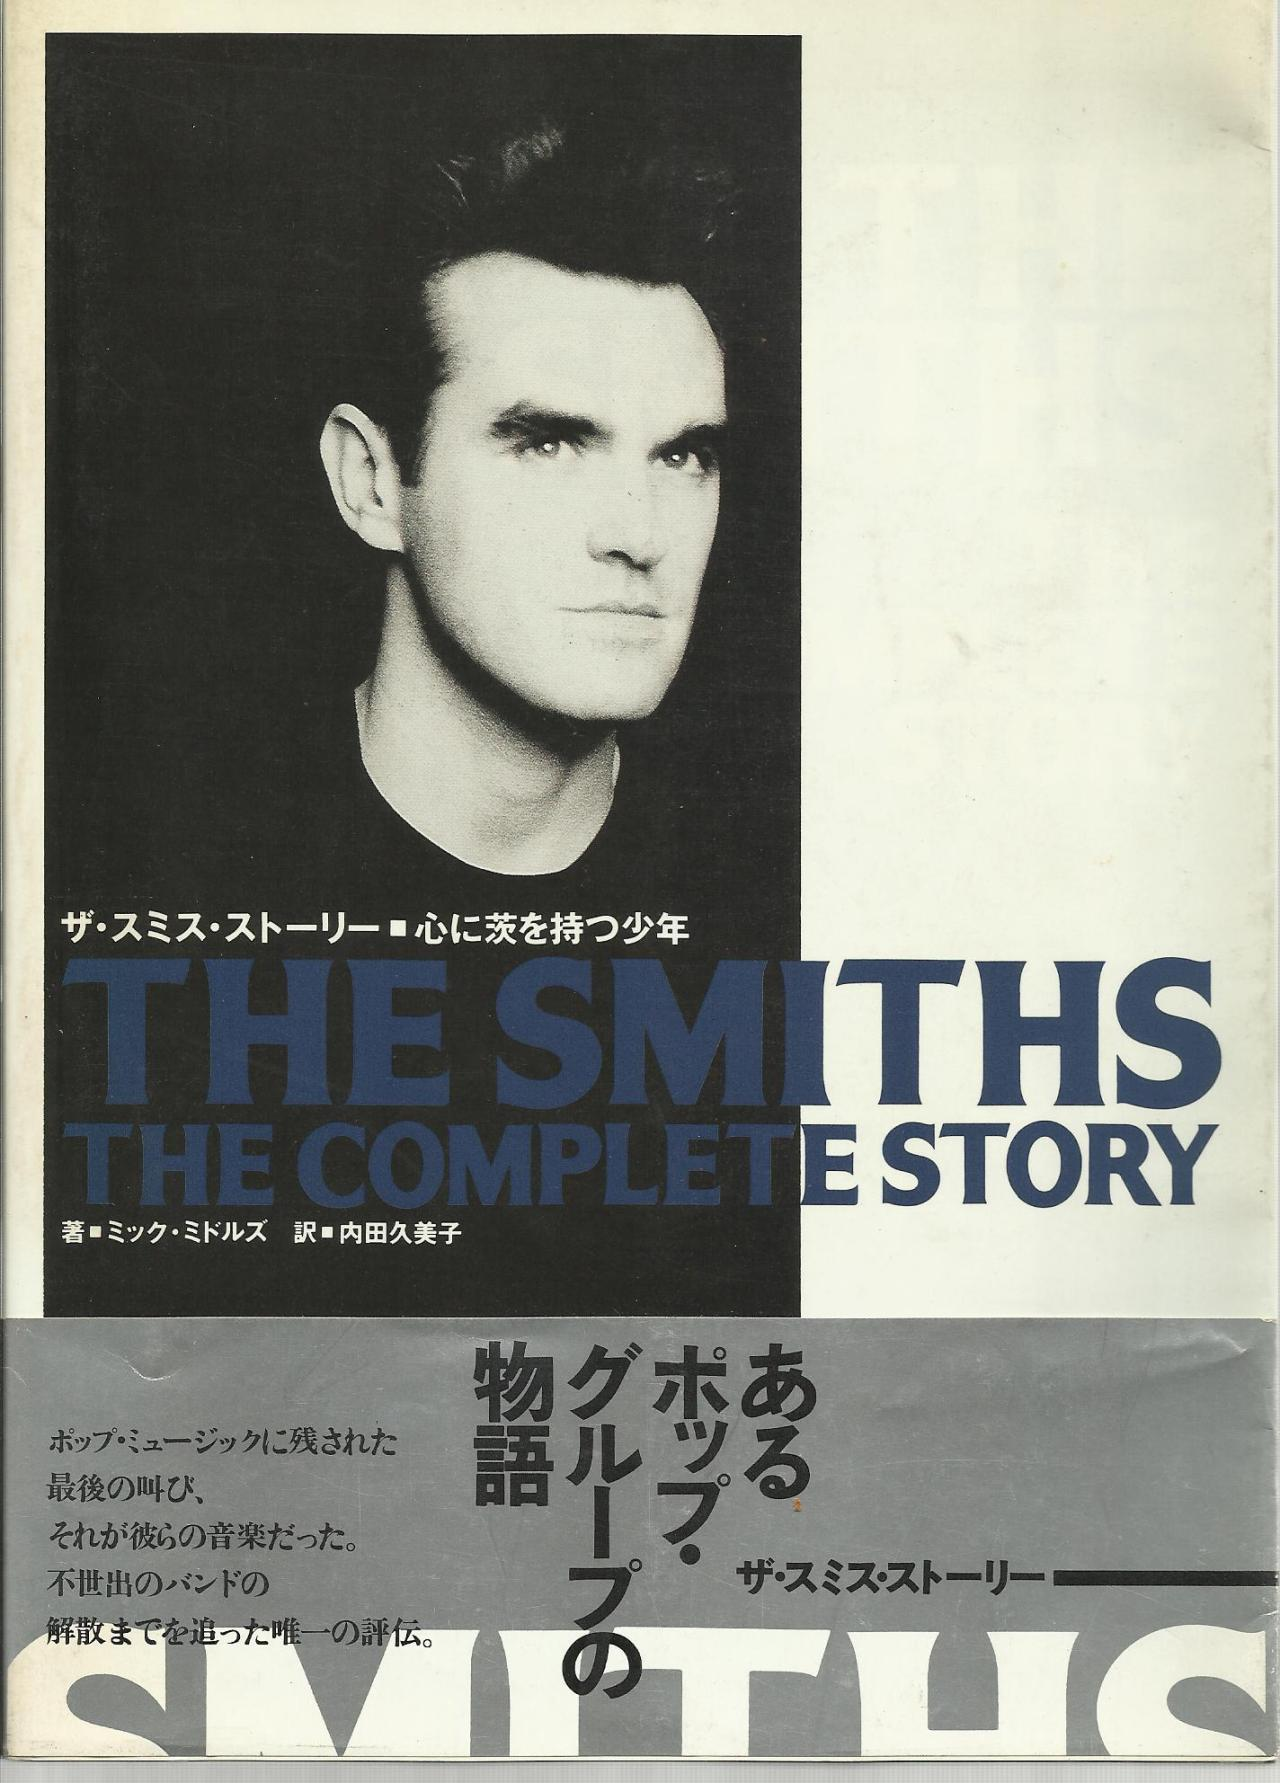 education-in-reverse:  The Smiths, the complete story, japanese cover